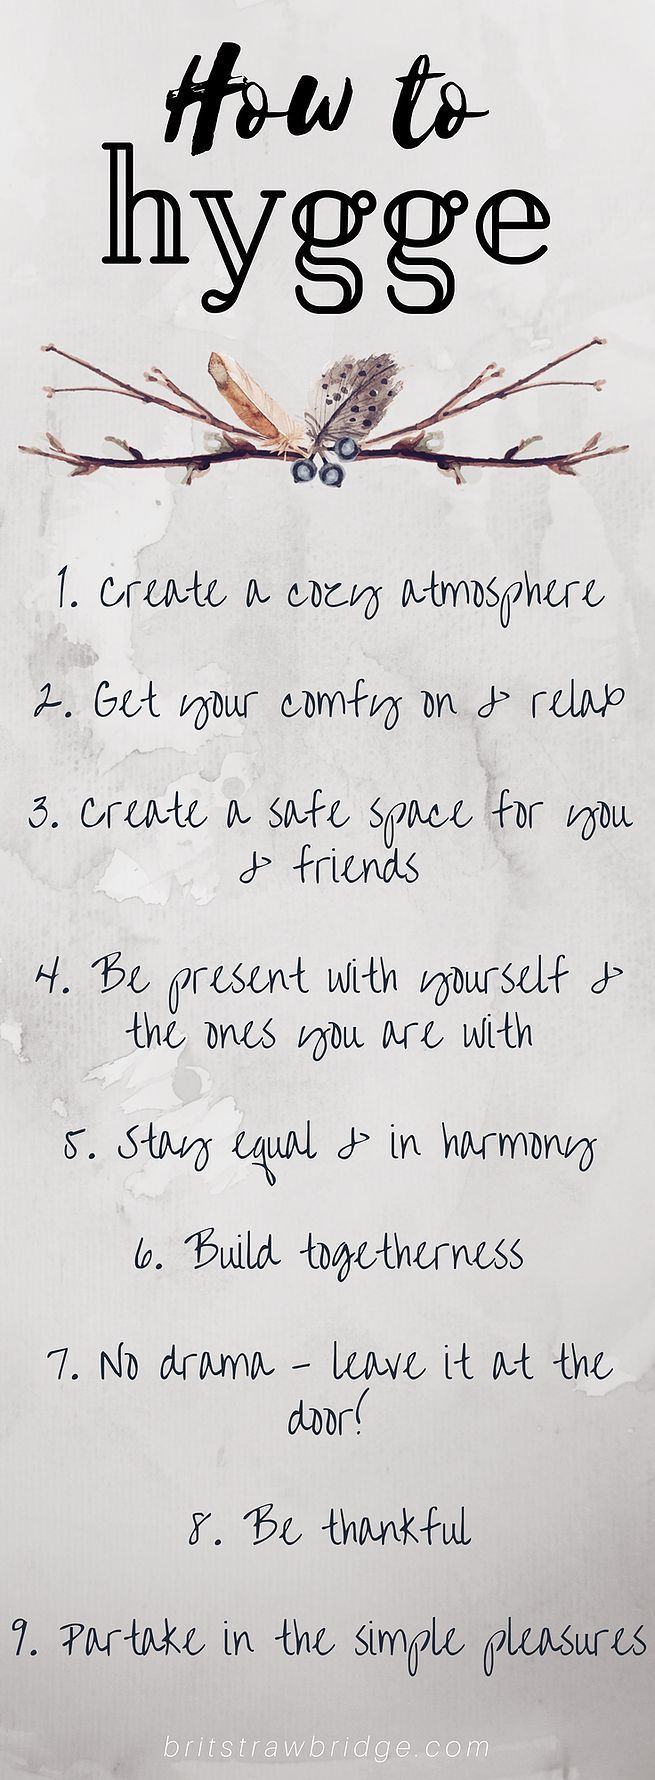 How to Hygge | Happiness Things